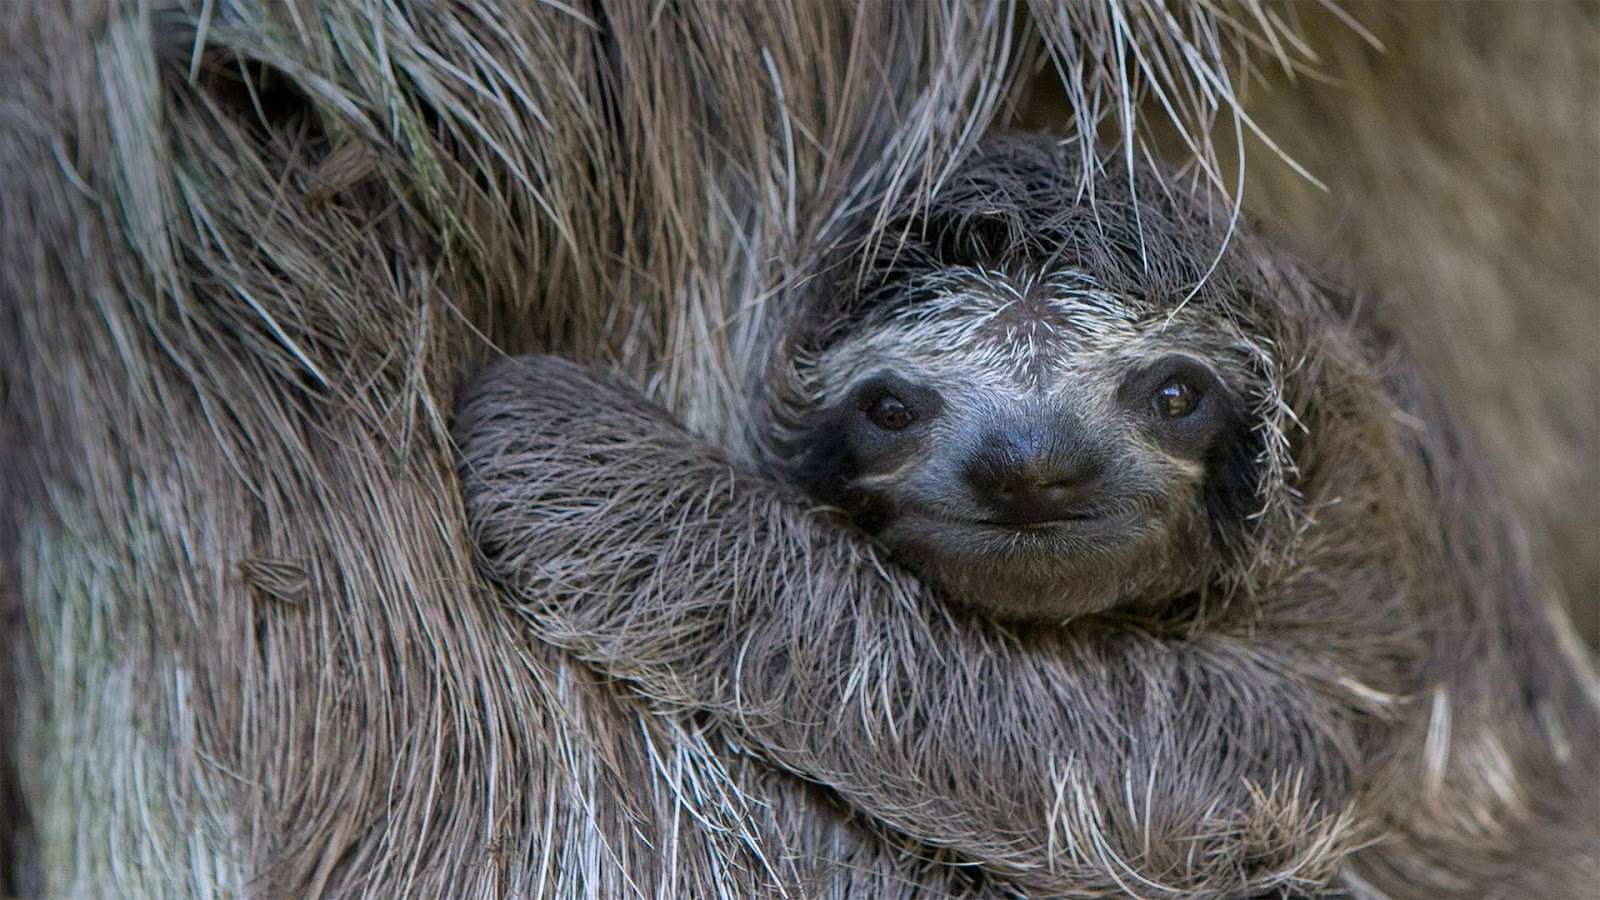 Newborn brown-throated sloth with mother, Sloth Sanctuary of Costa Rica © Suzi Eszterhas/Minden Pictures